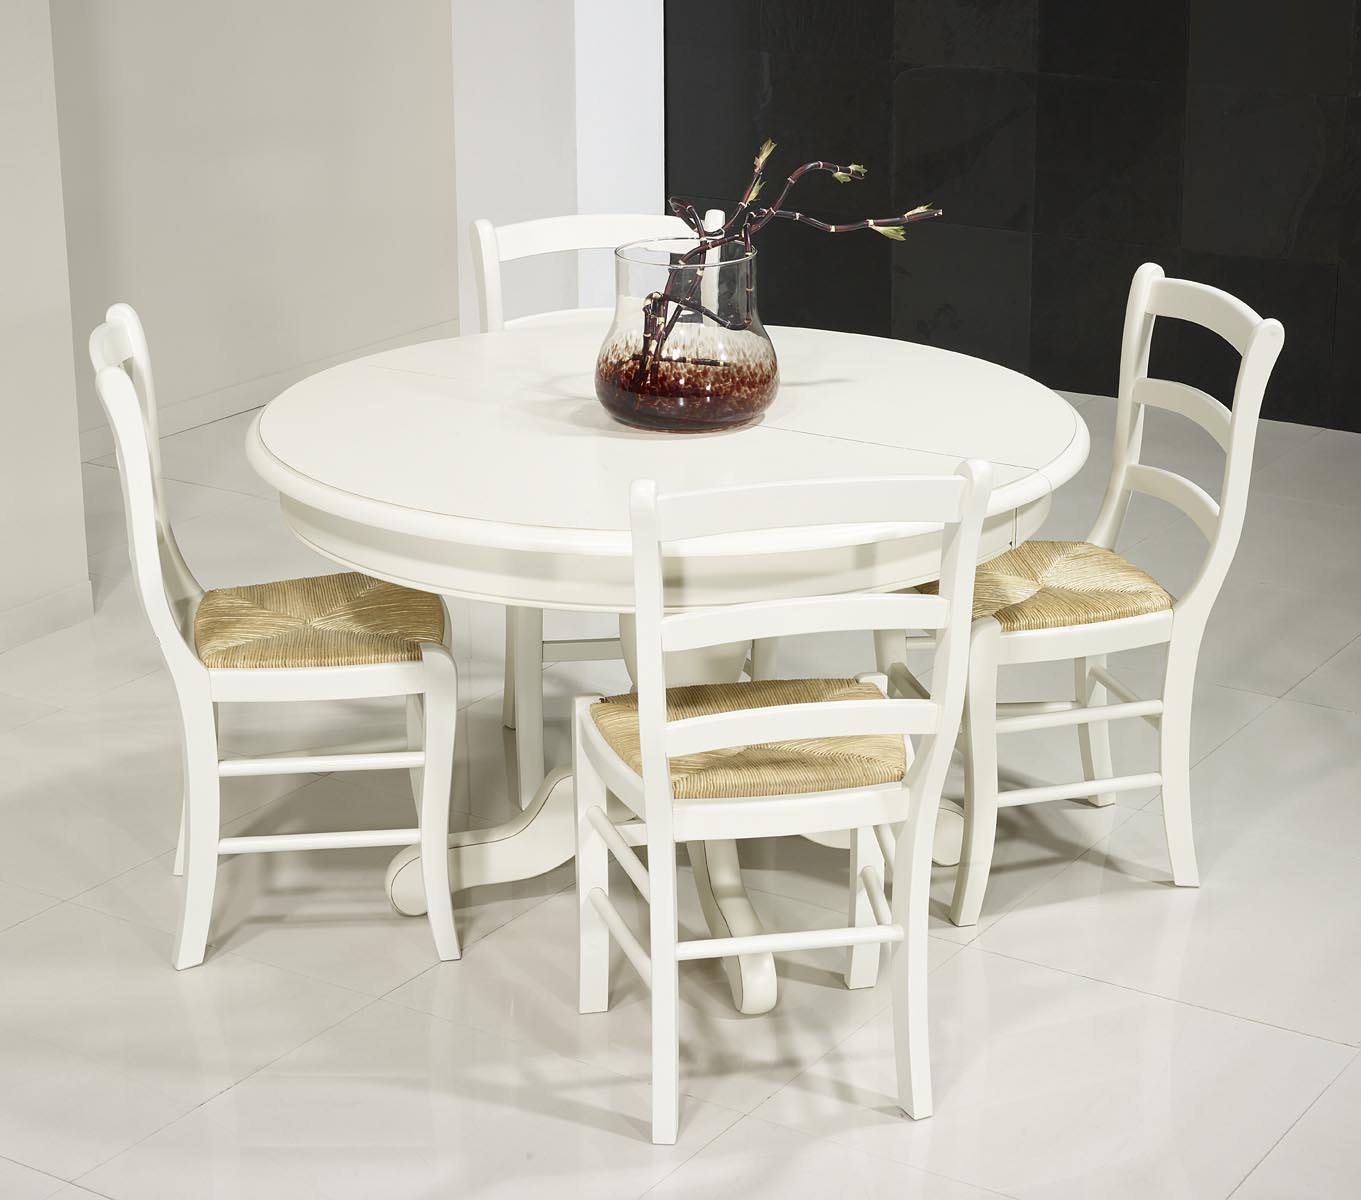 table ronde pied central en merisier massif de style louis